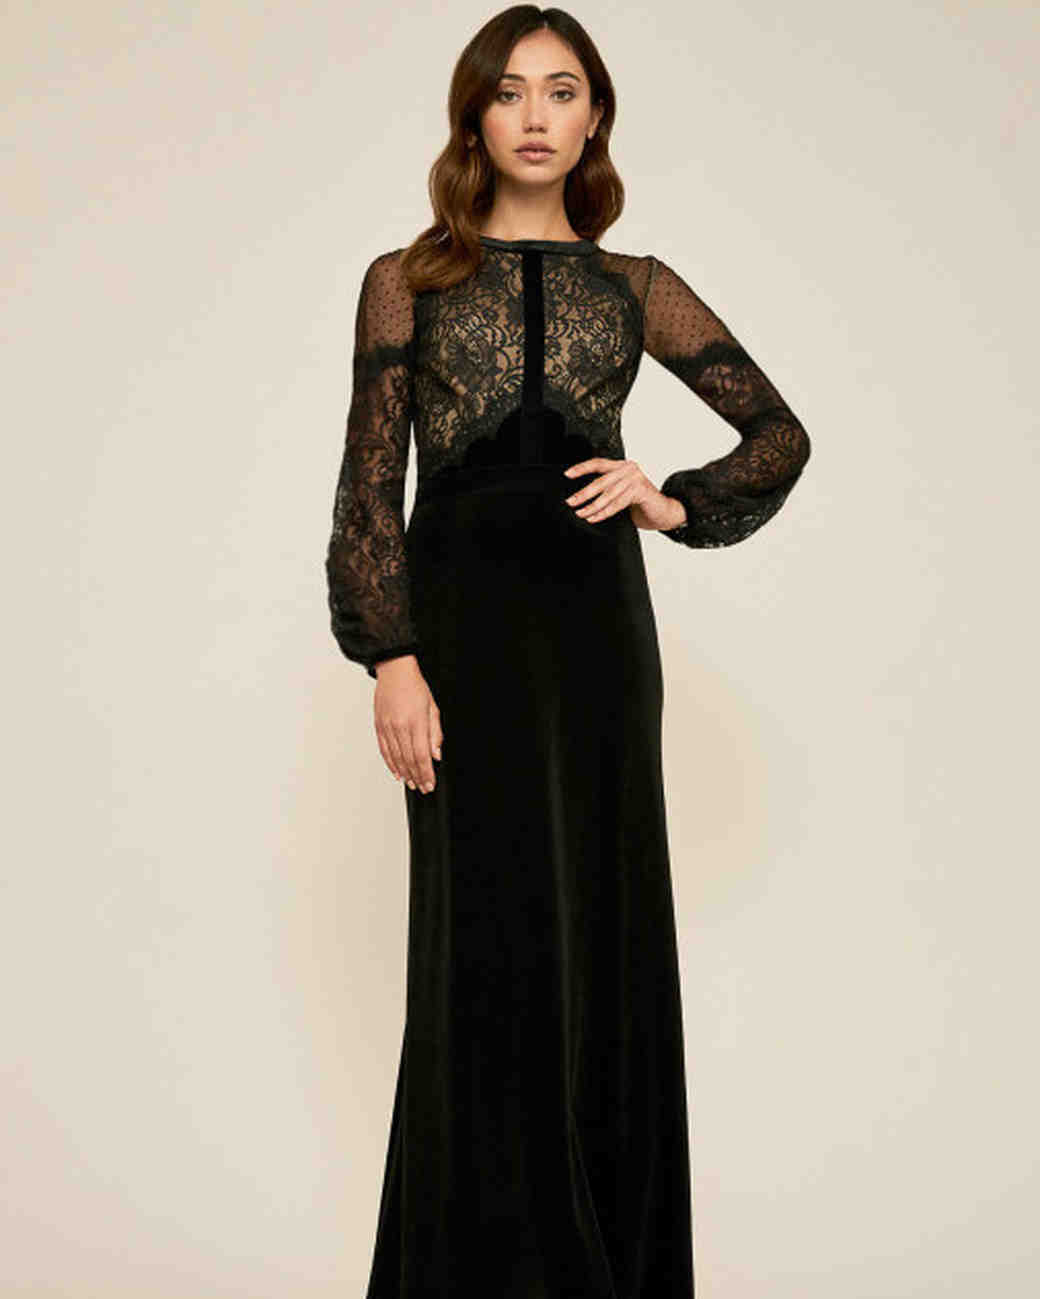 Ormal dresses for busty women draw?